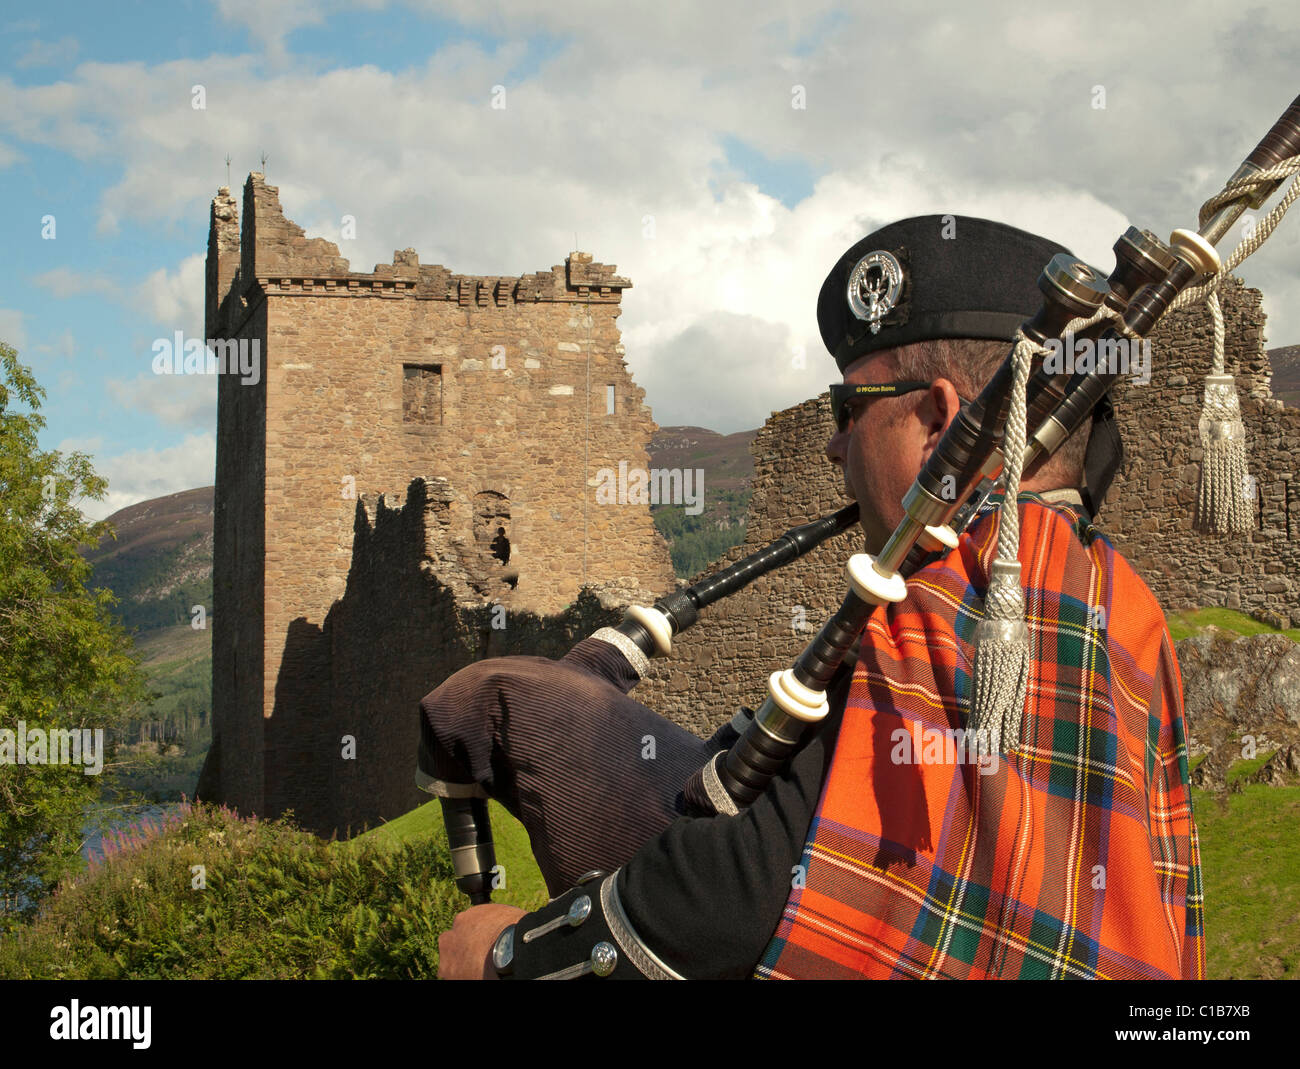 professional bagpipe player playing the bagpipes outside Urquhart Castle, Loch Ness, Scottish Highlands - Stock Image